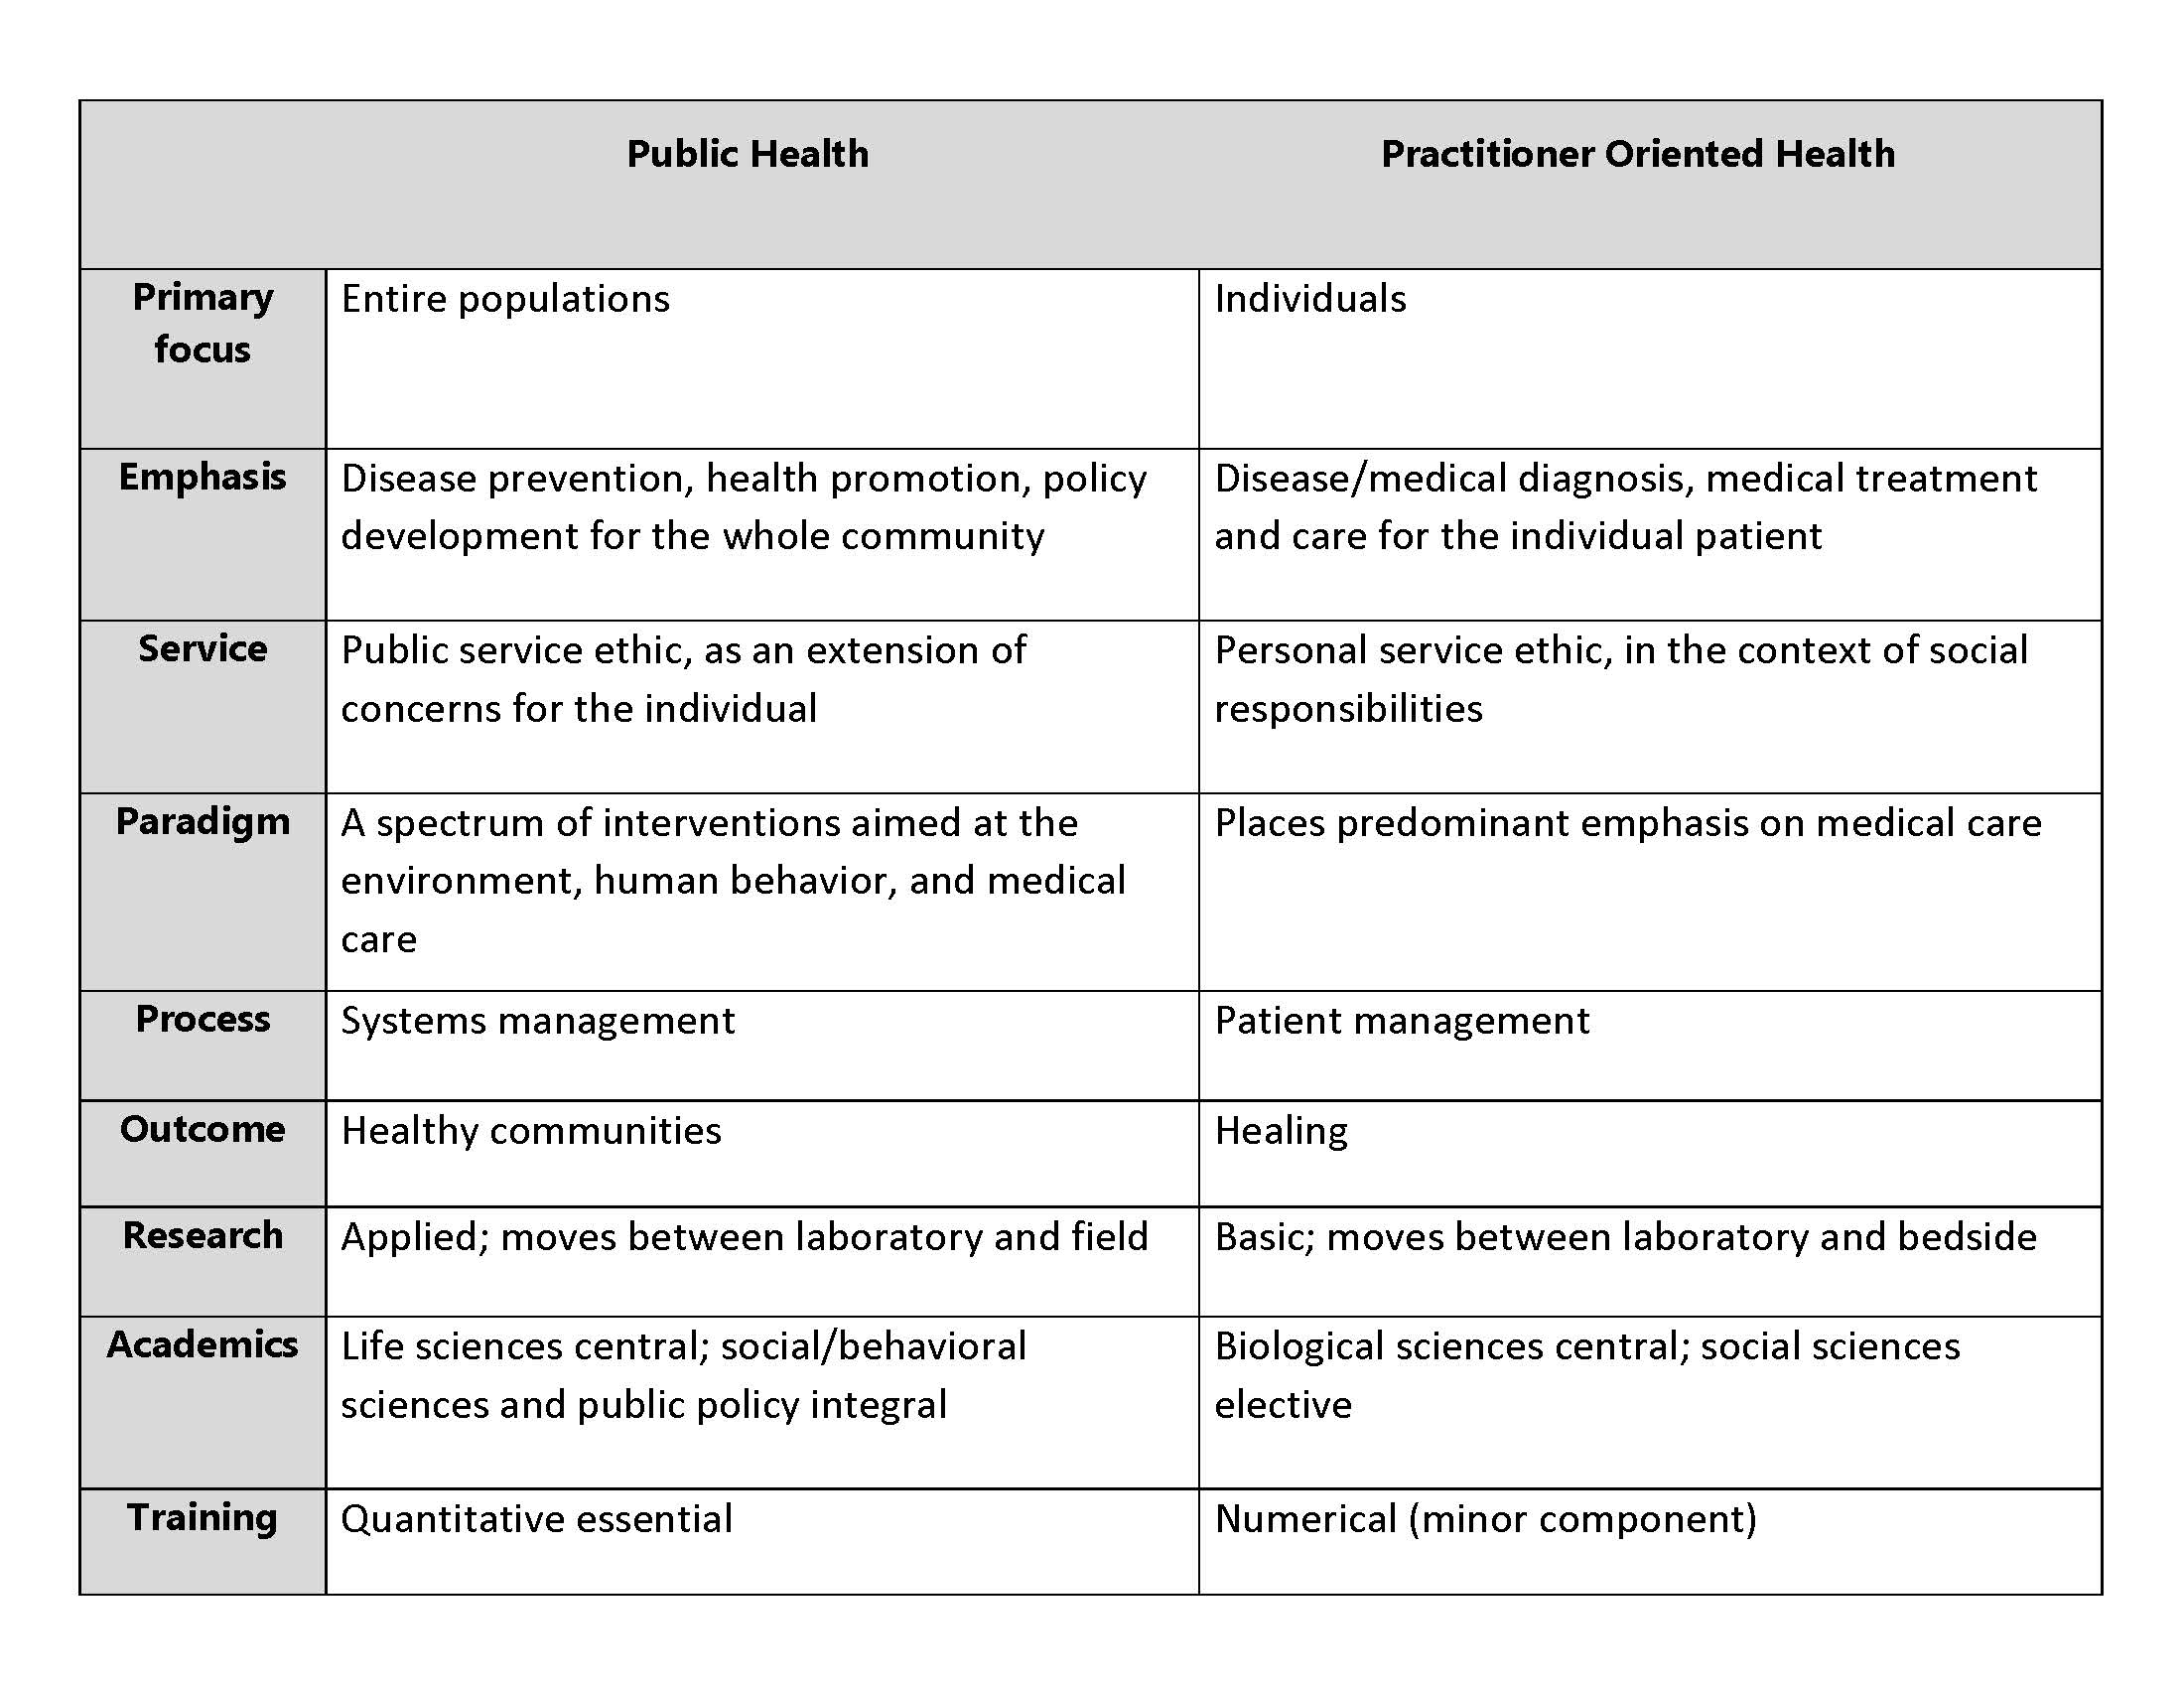 Table comparing public heath and practitioner oriented health